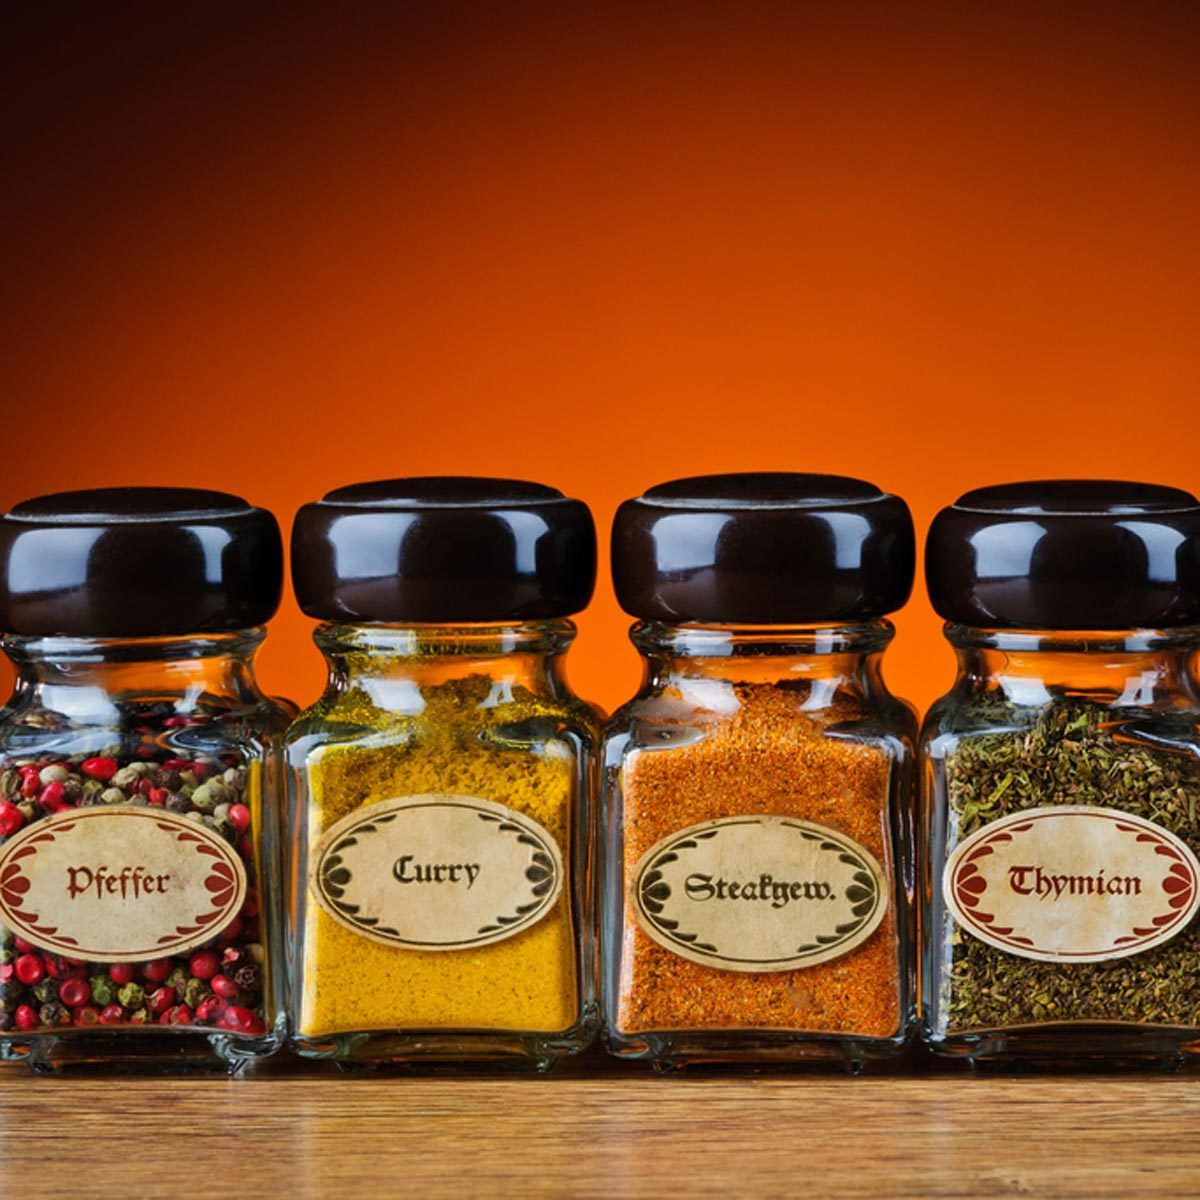 Make Spice Labels